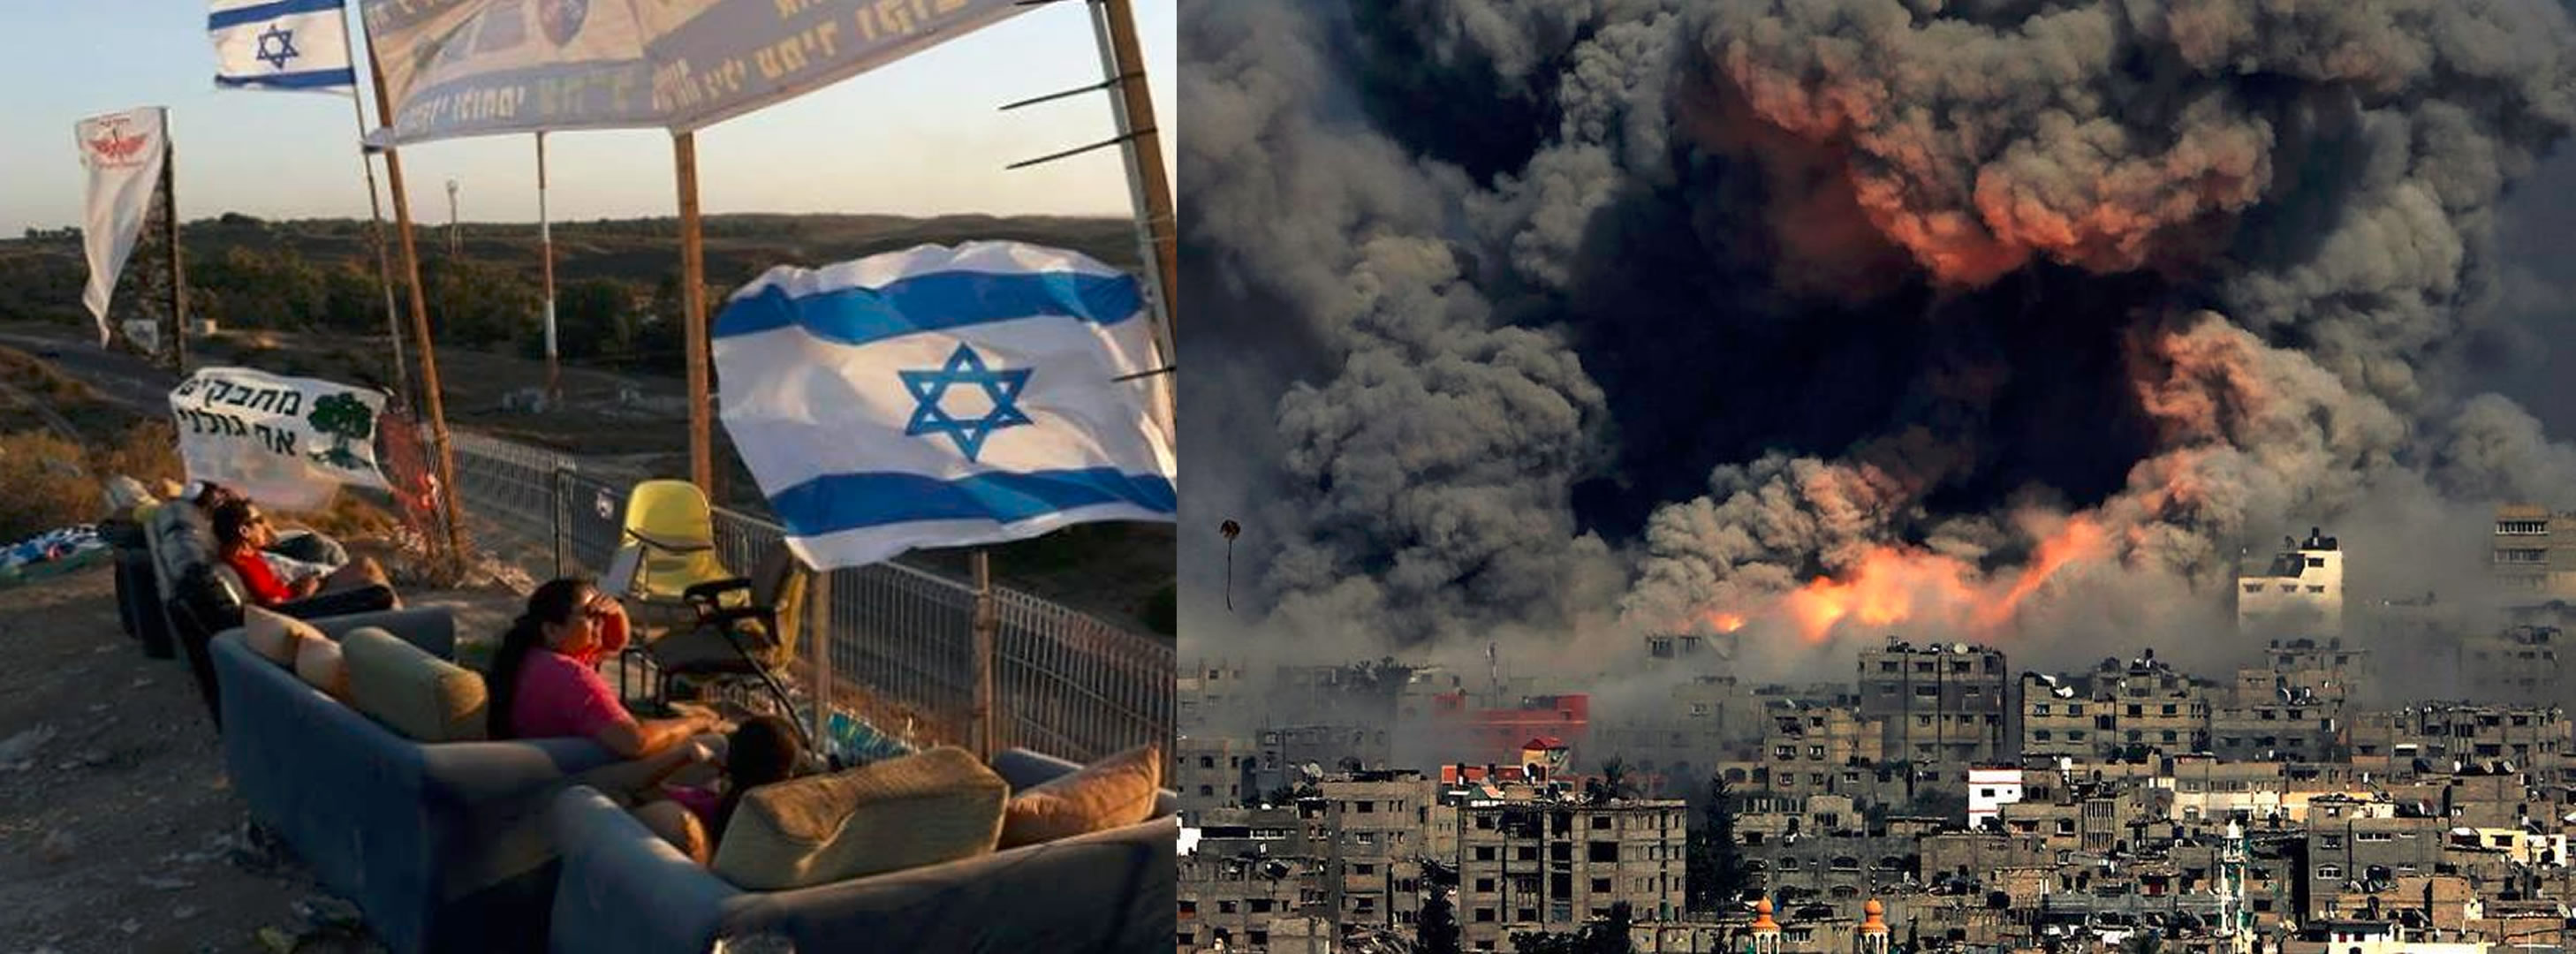 Israelis relax (L) and watch massacres in Gaza (R)